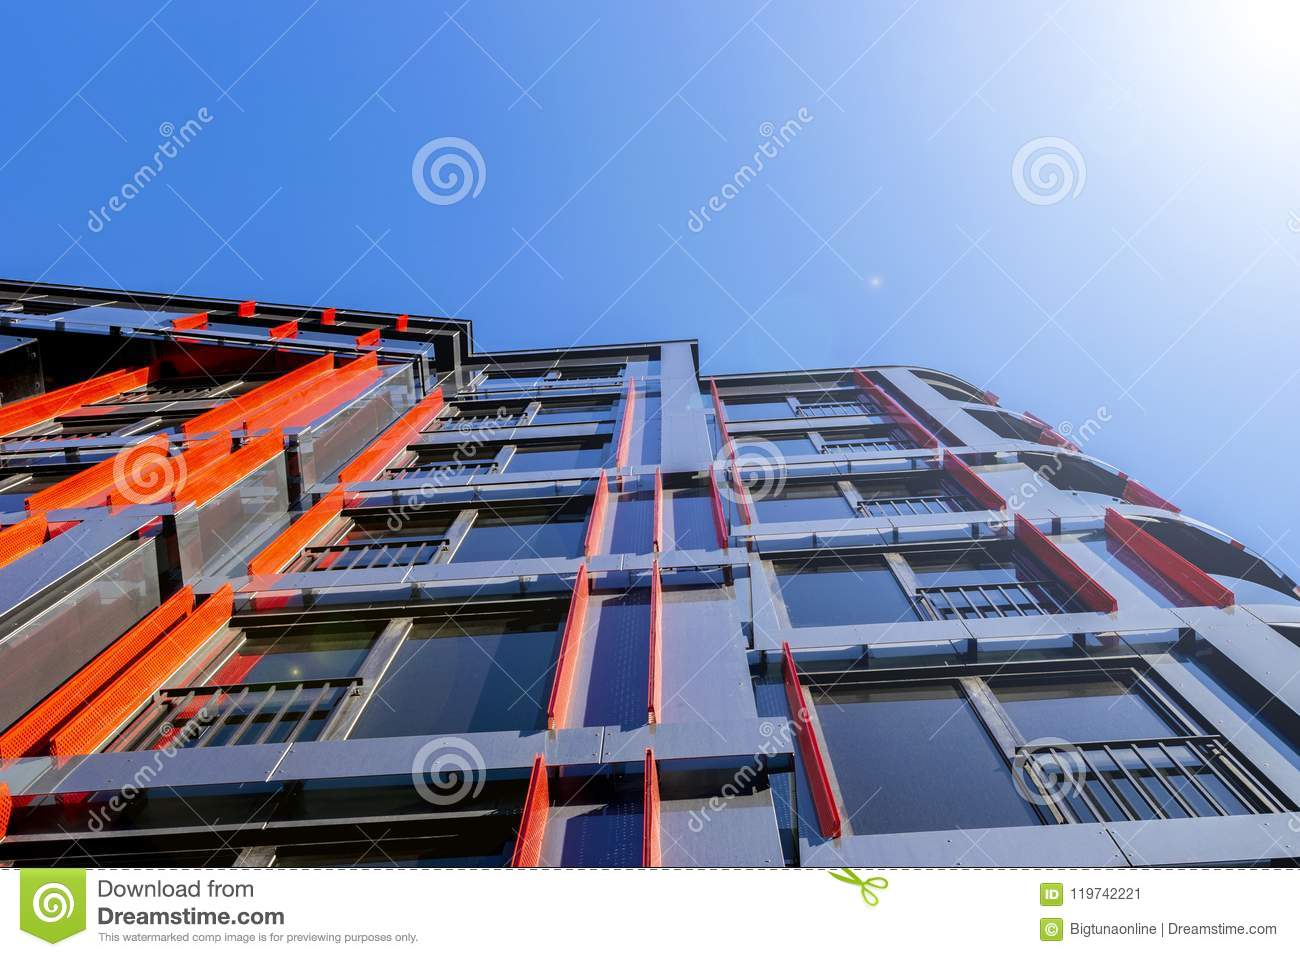 high tech modern architecture buildings. Details Of Office Building Exterior. Business Buildings Skyline Looking Up  With Blue Sky. Modern Architecture Apartment. High Tech High Modern ,